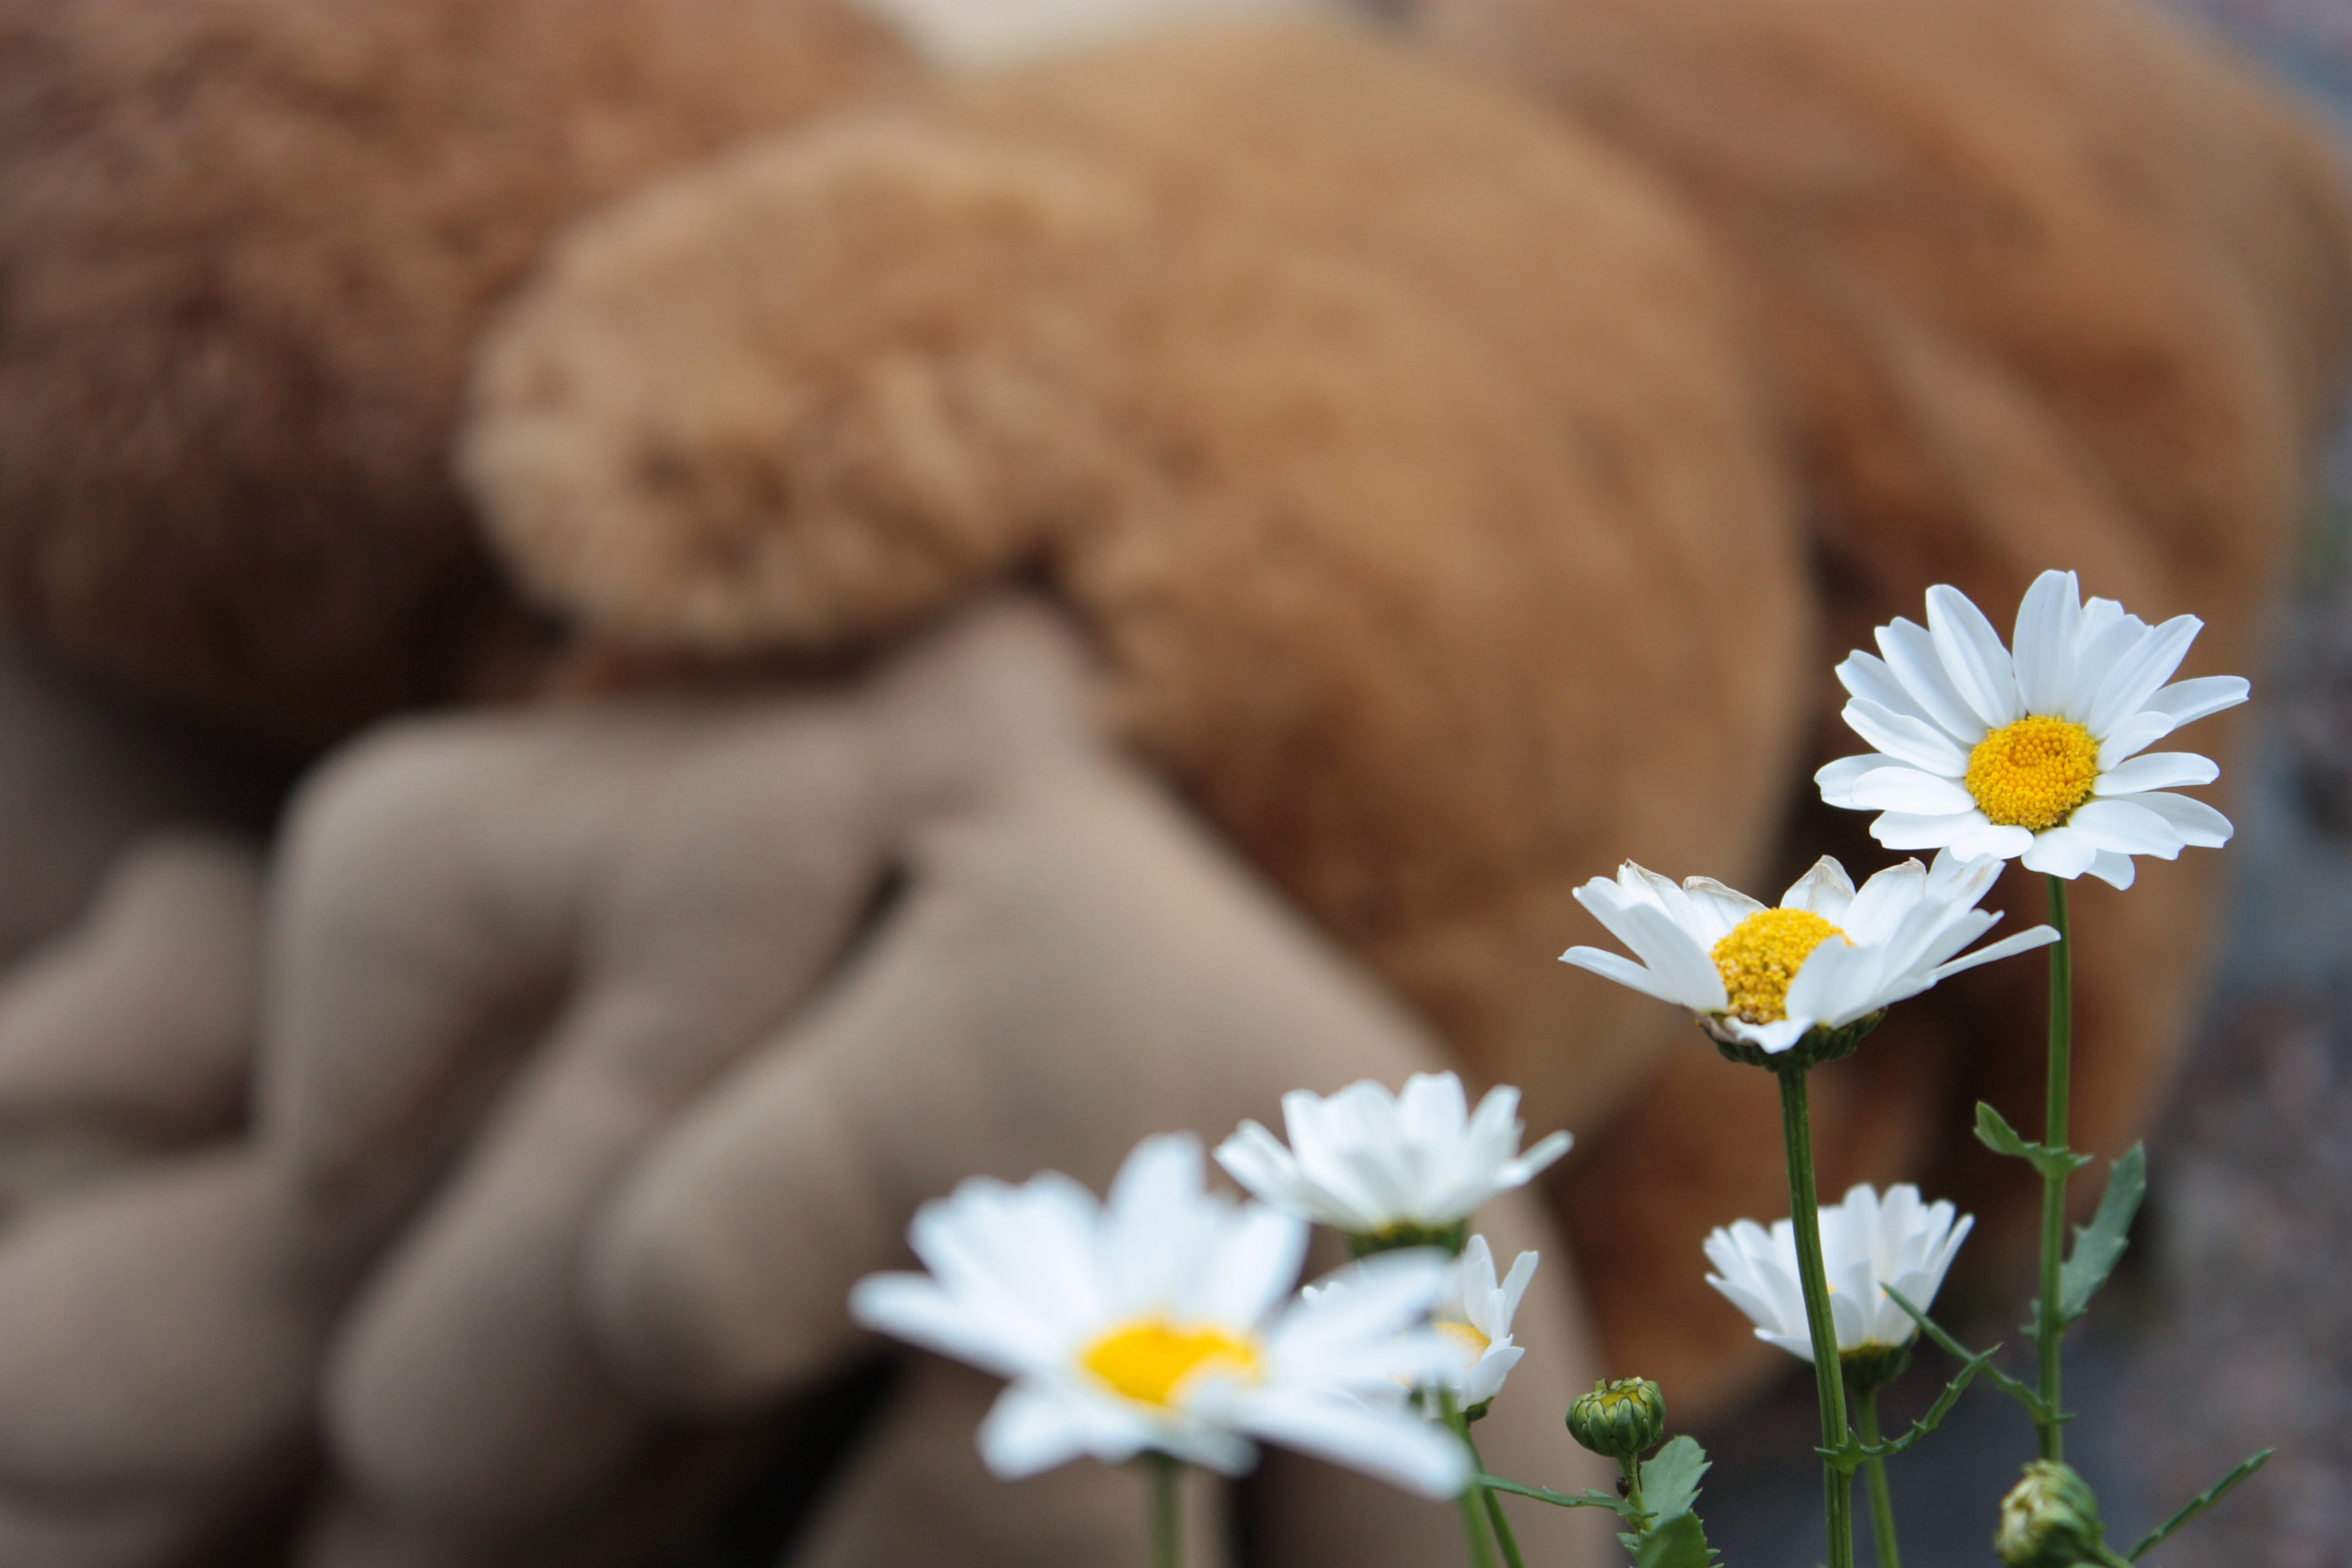 White Daisies Beside Brown Plush Toy Selective-focus Photography